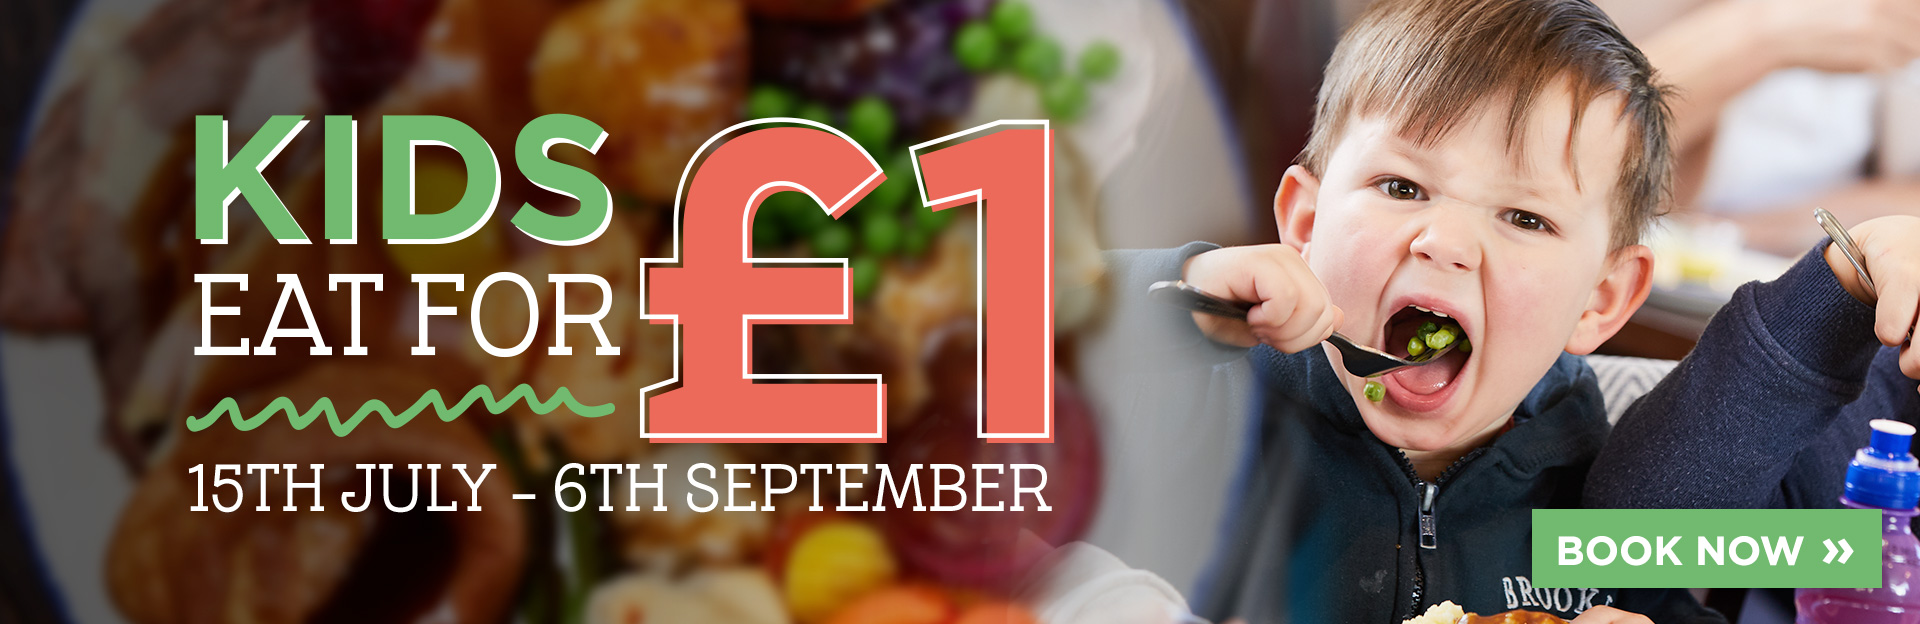 Kids eat for £1 at The Young Vanish Inn